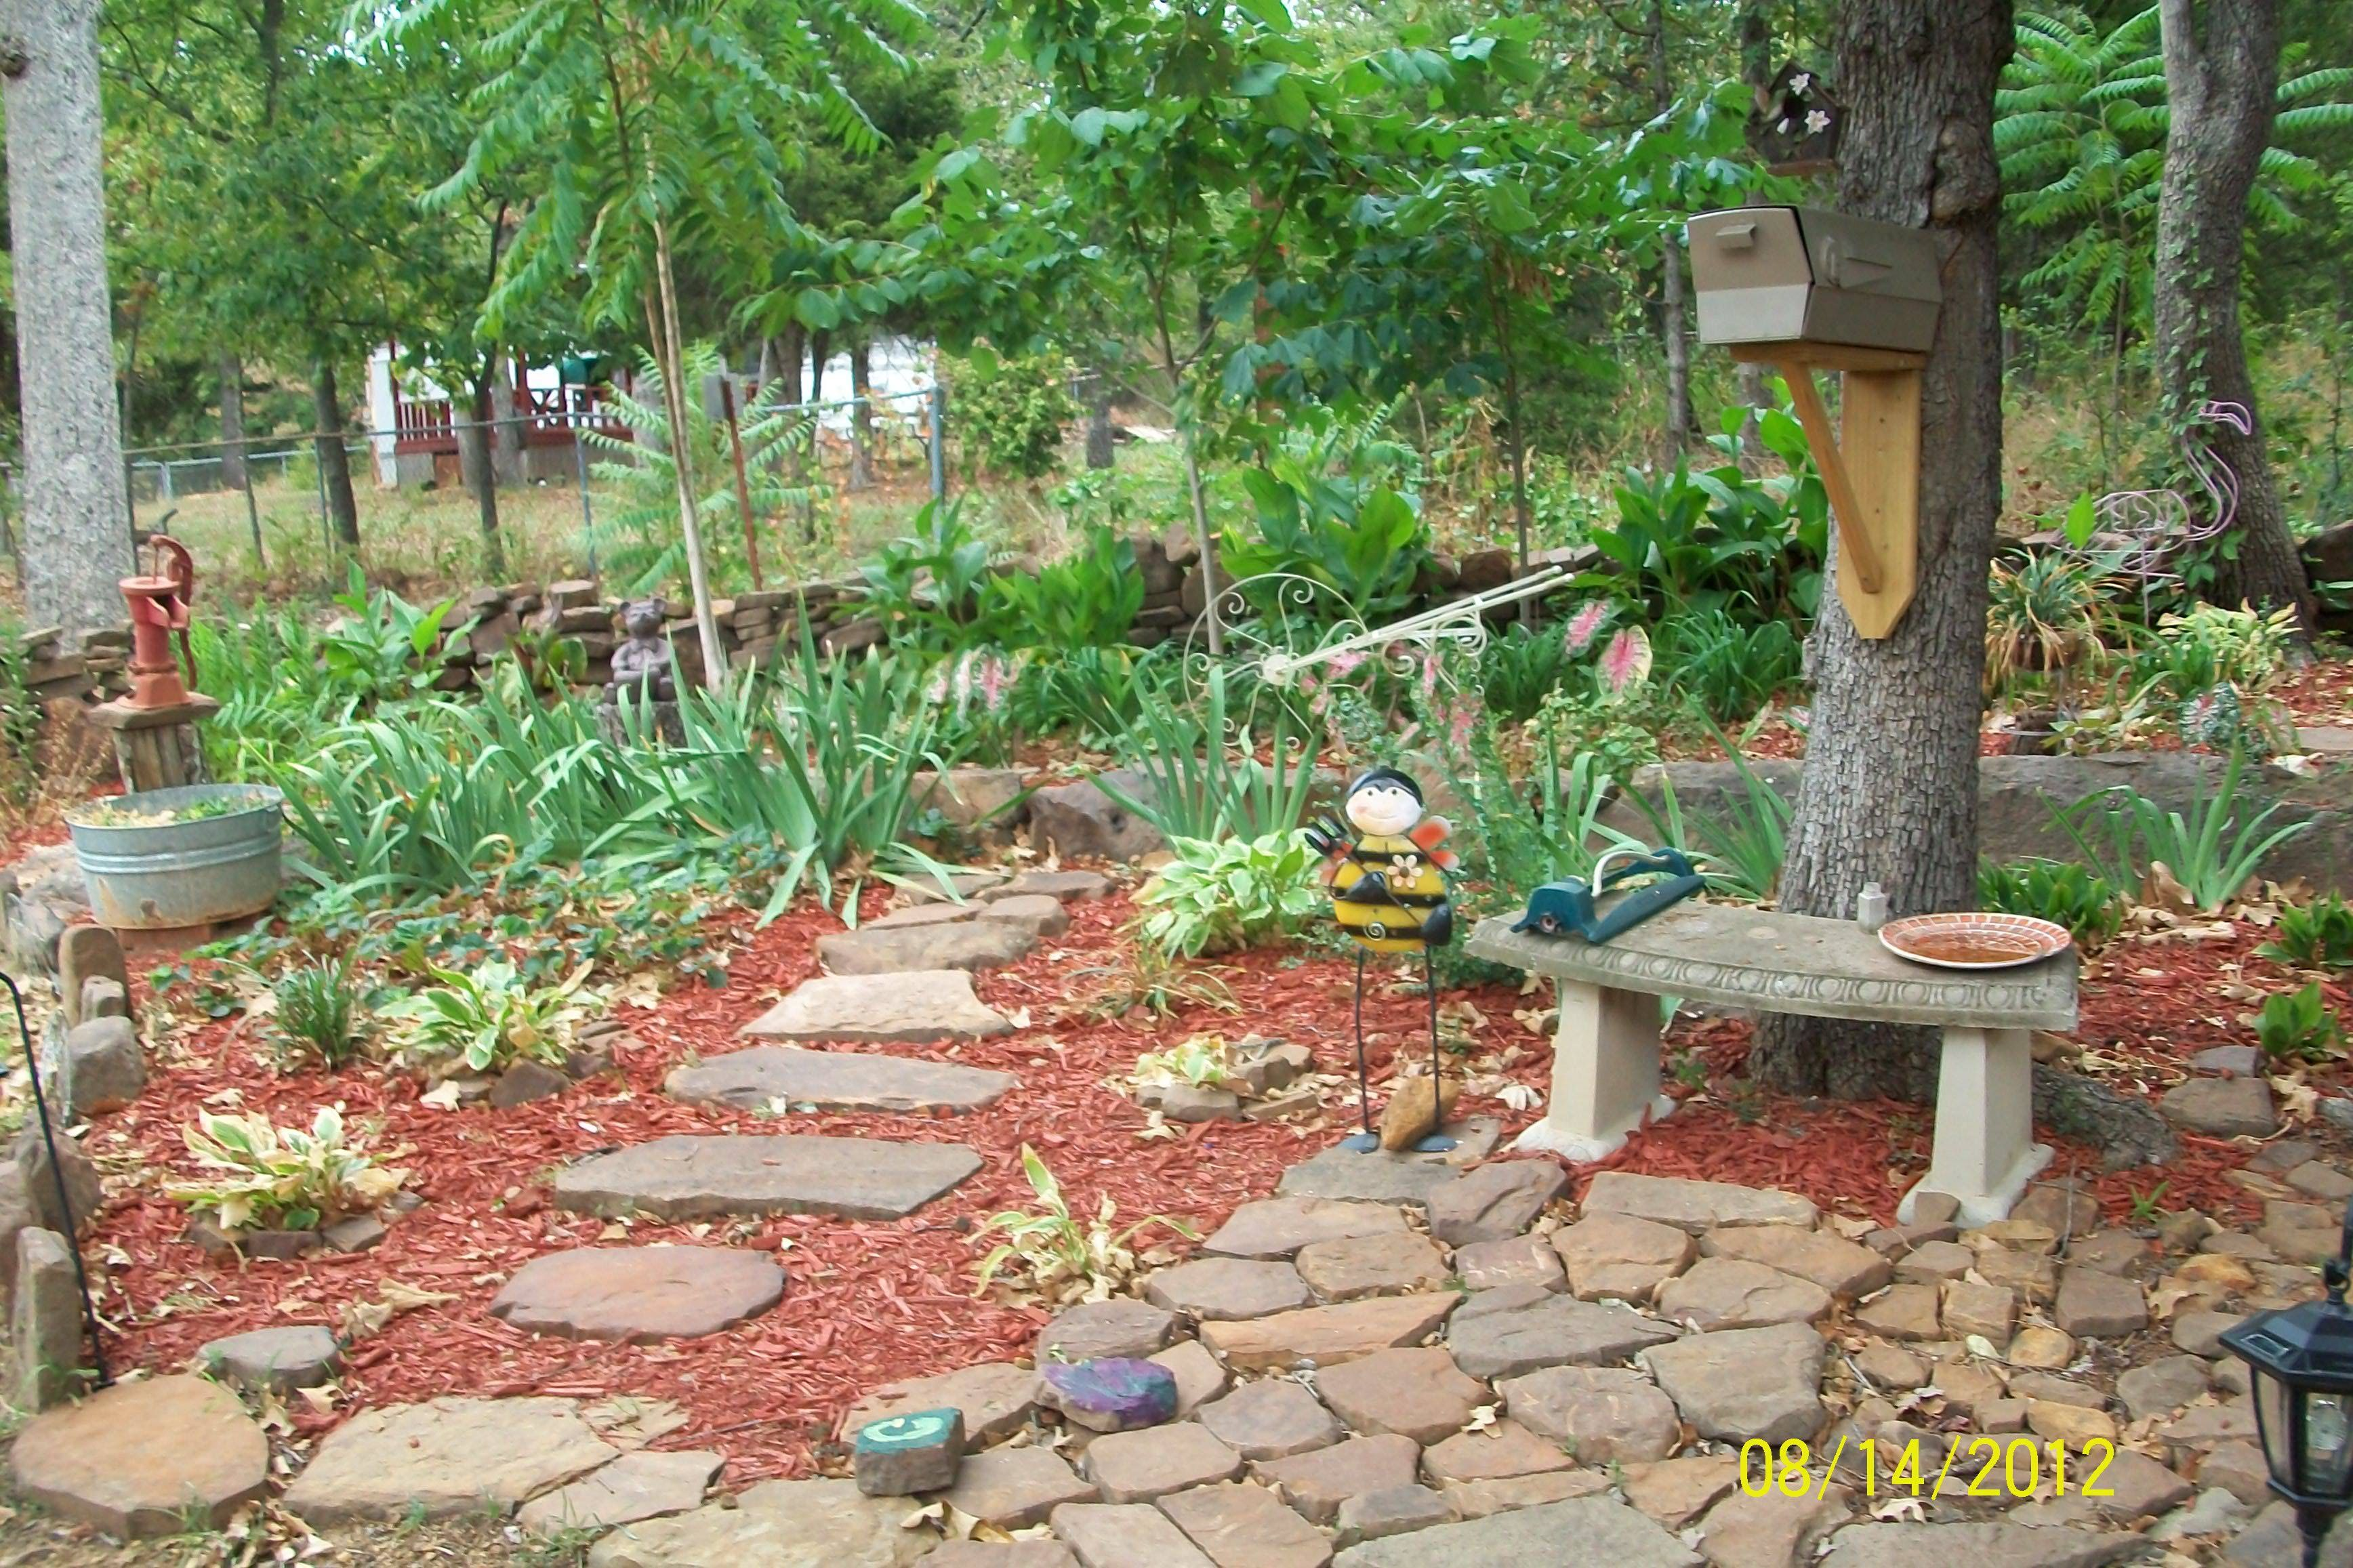 How to build great rock gardens for small spaces garden for Small rock garden designs